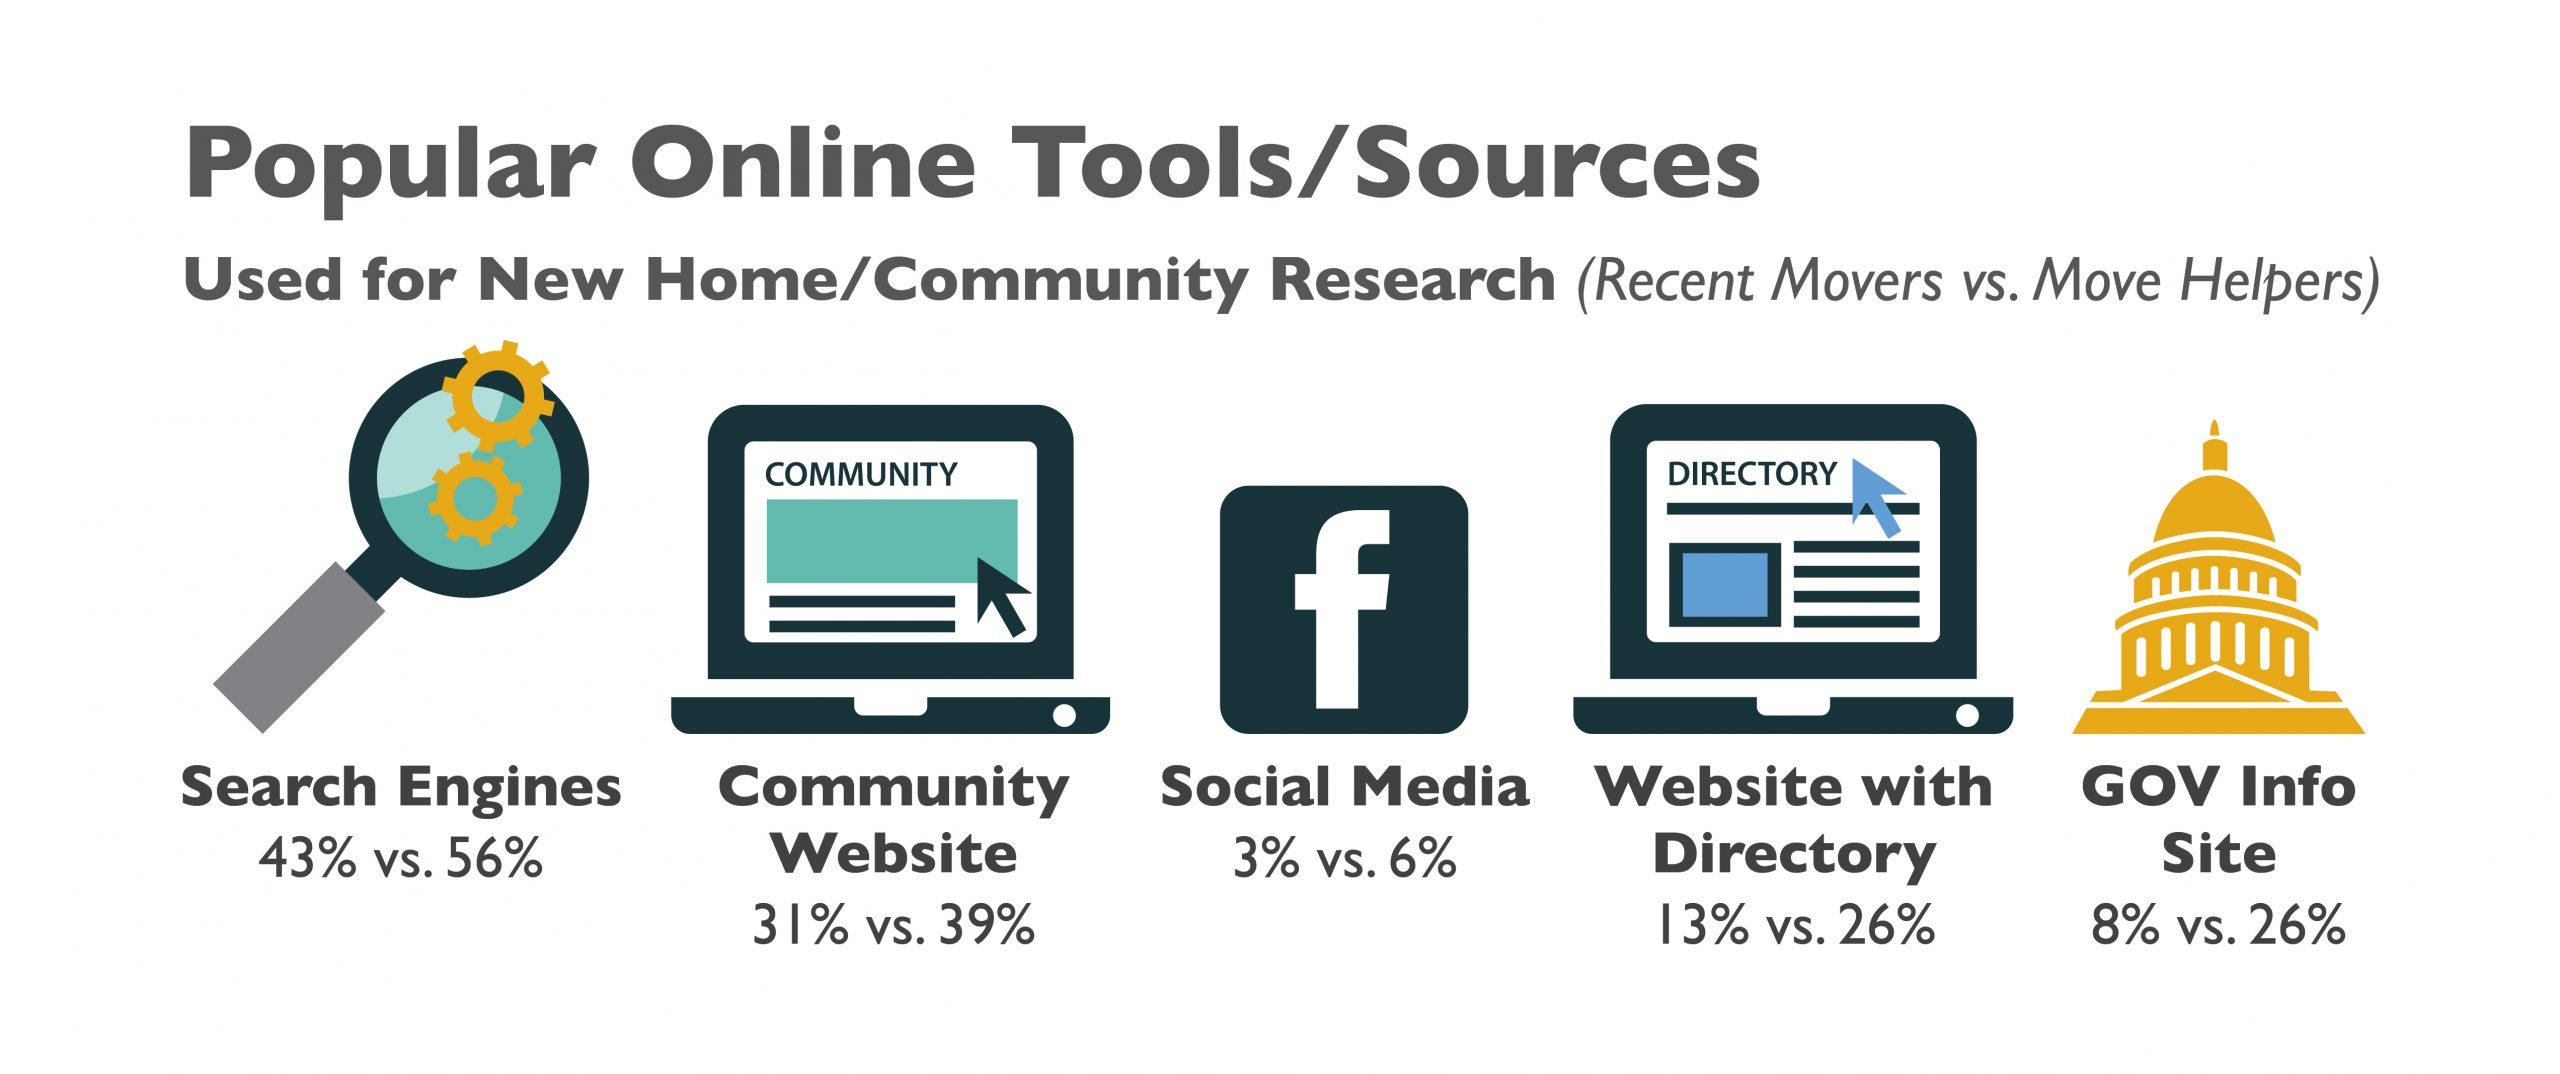 Popular online tools used by 55+ active adults for homebuying research